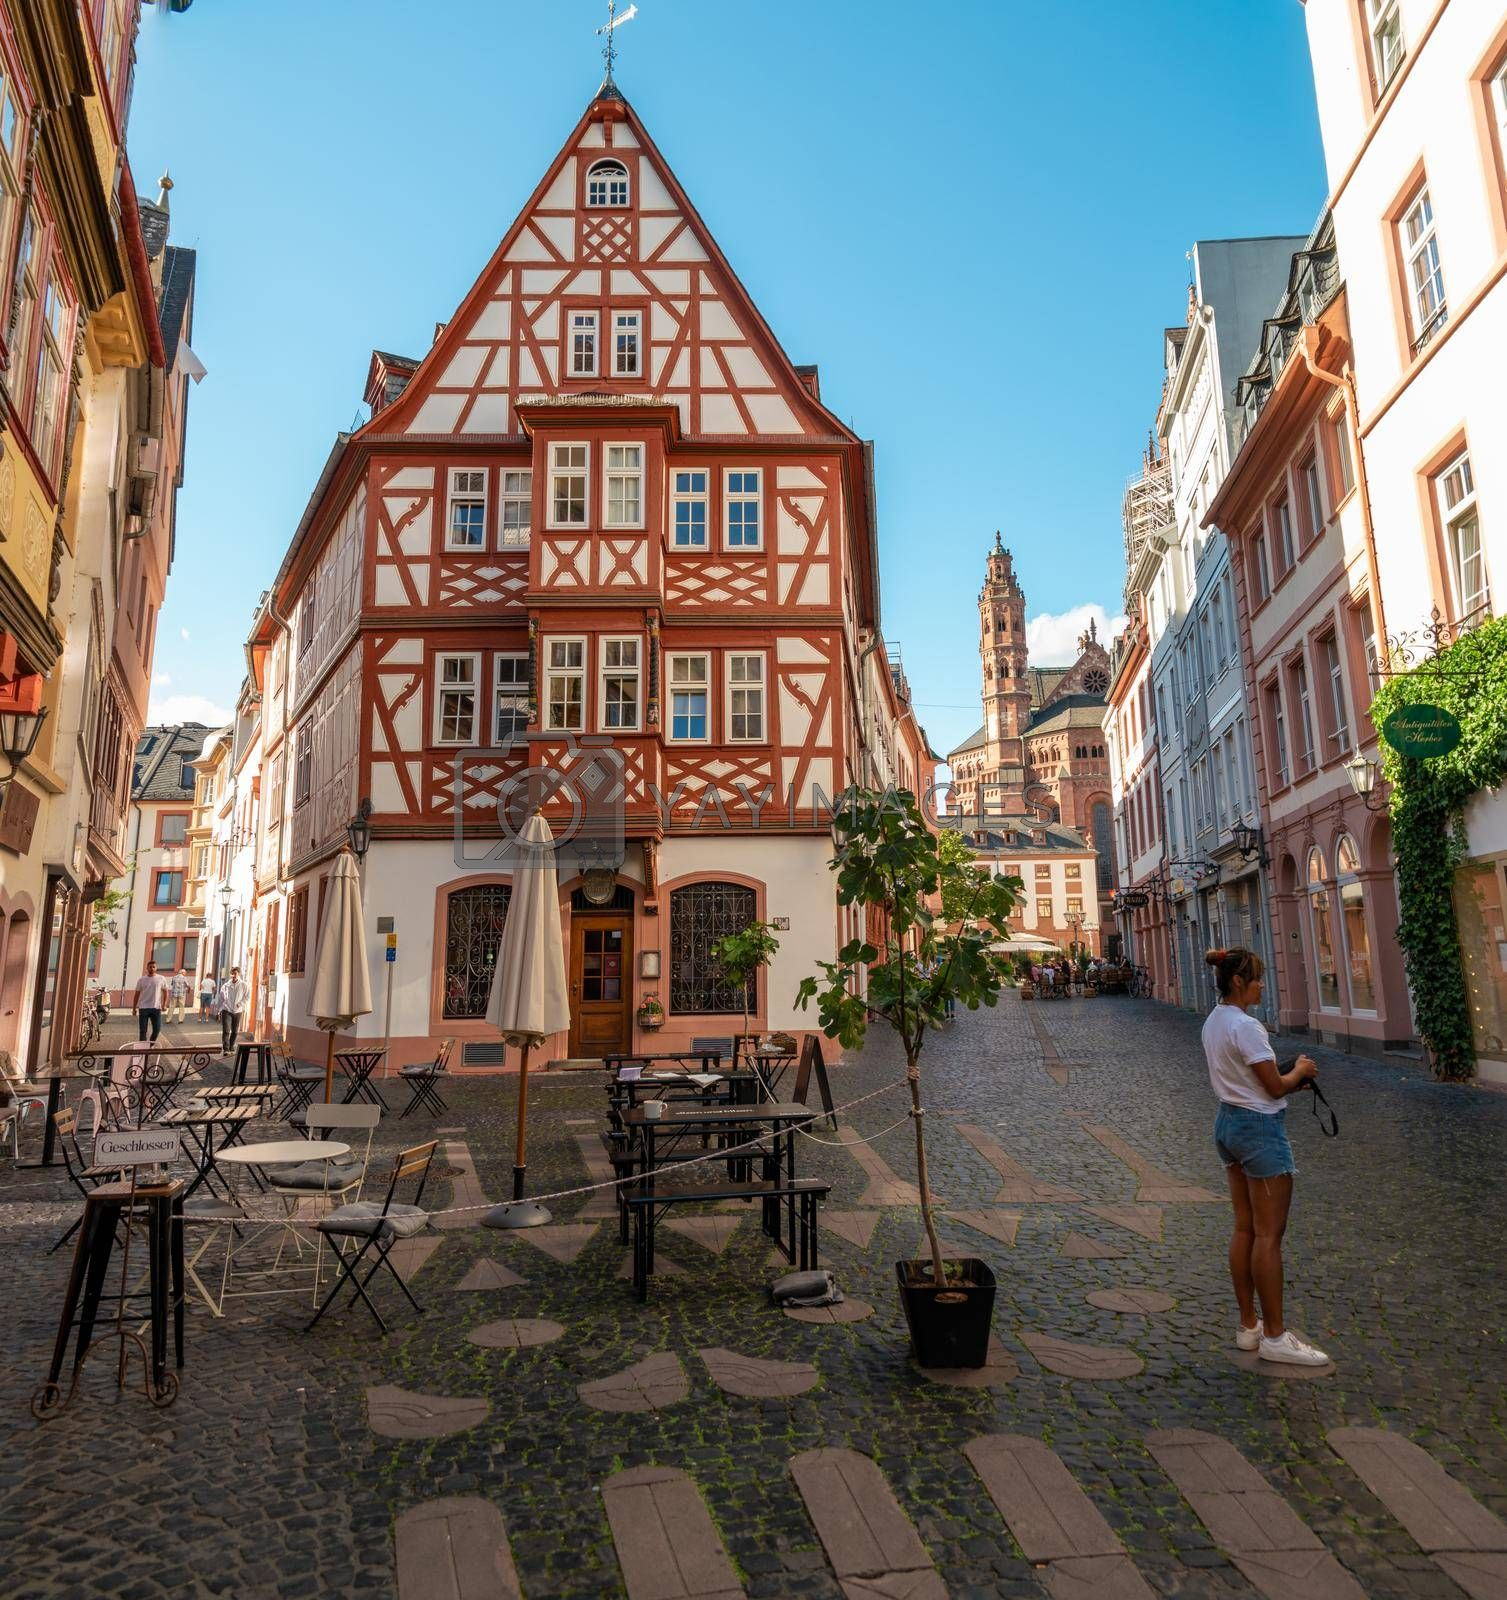 Mainz Germany August 2020, Classical timber houses in the center of Mainz, Germany Europe